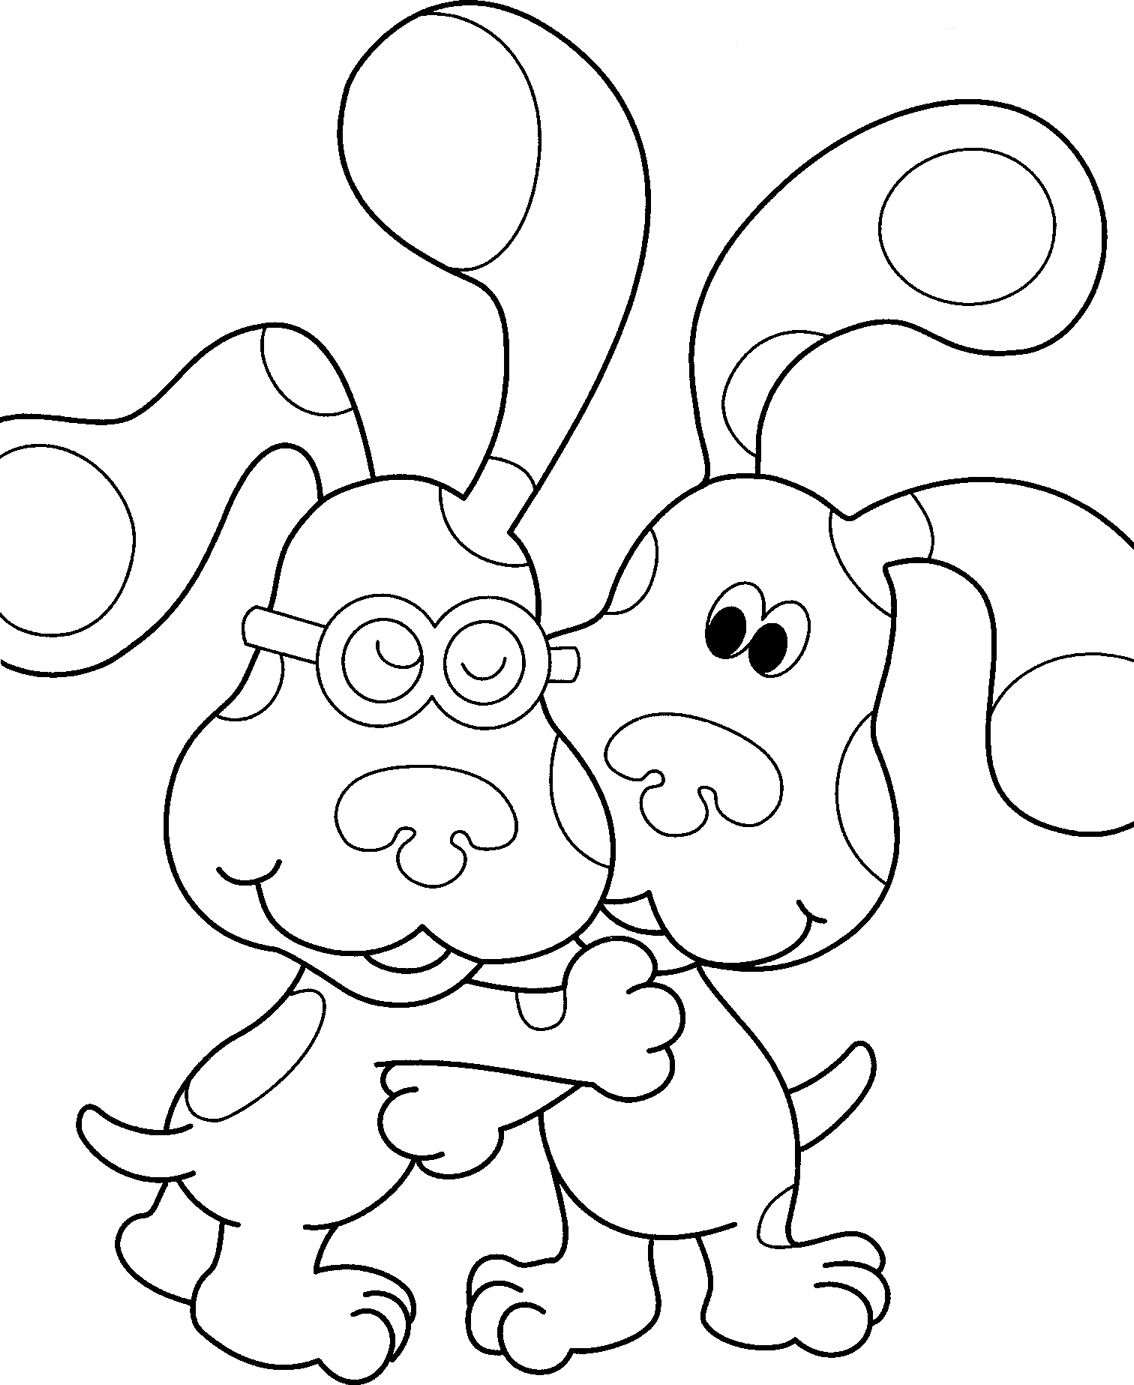 Image Result For Nick Jr Coloring Pages Paw Patrol Coloring Paw Patrol Coloring Pages Skye Paw Patrol Party